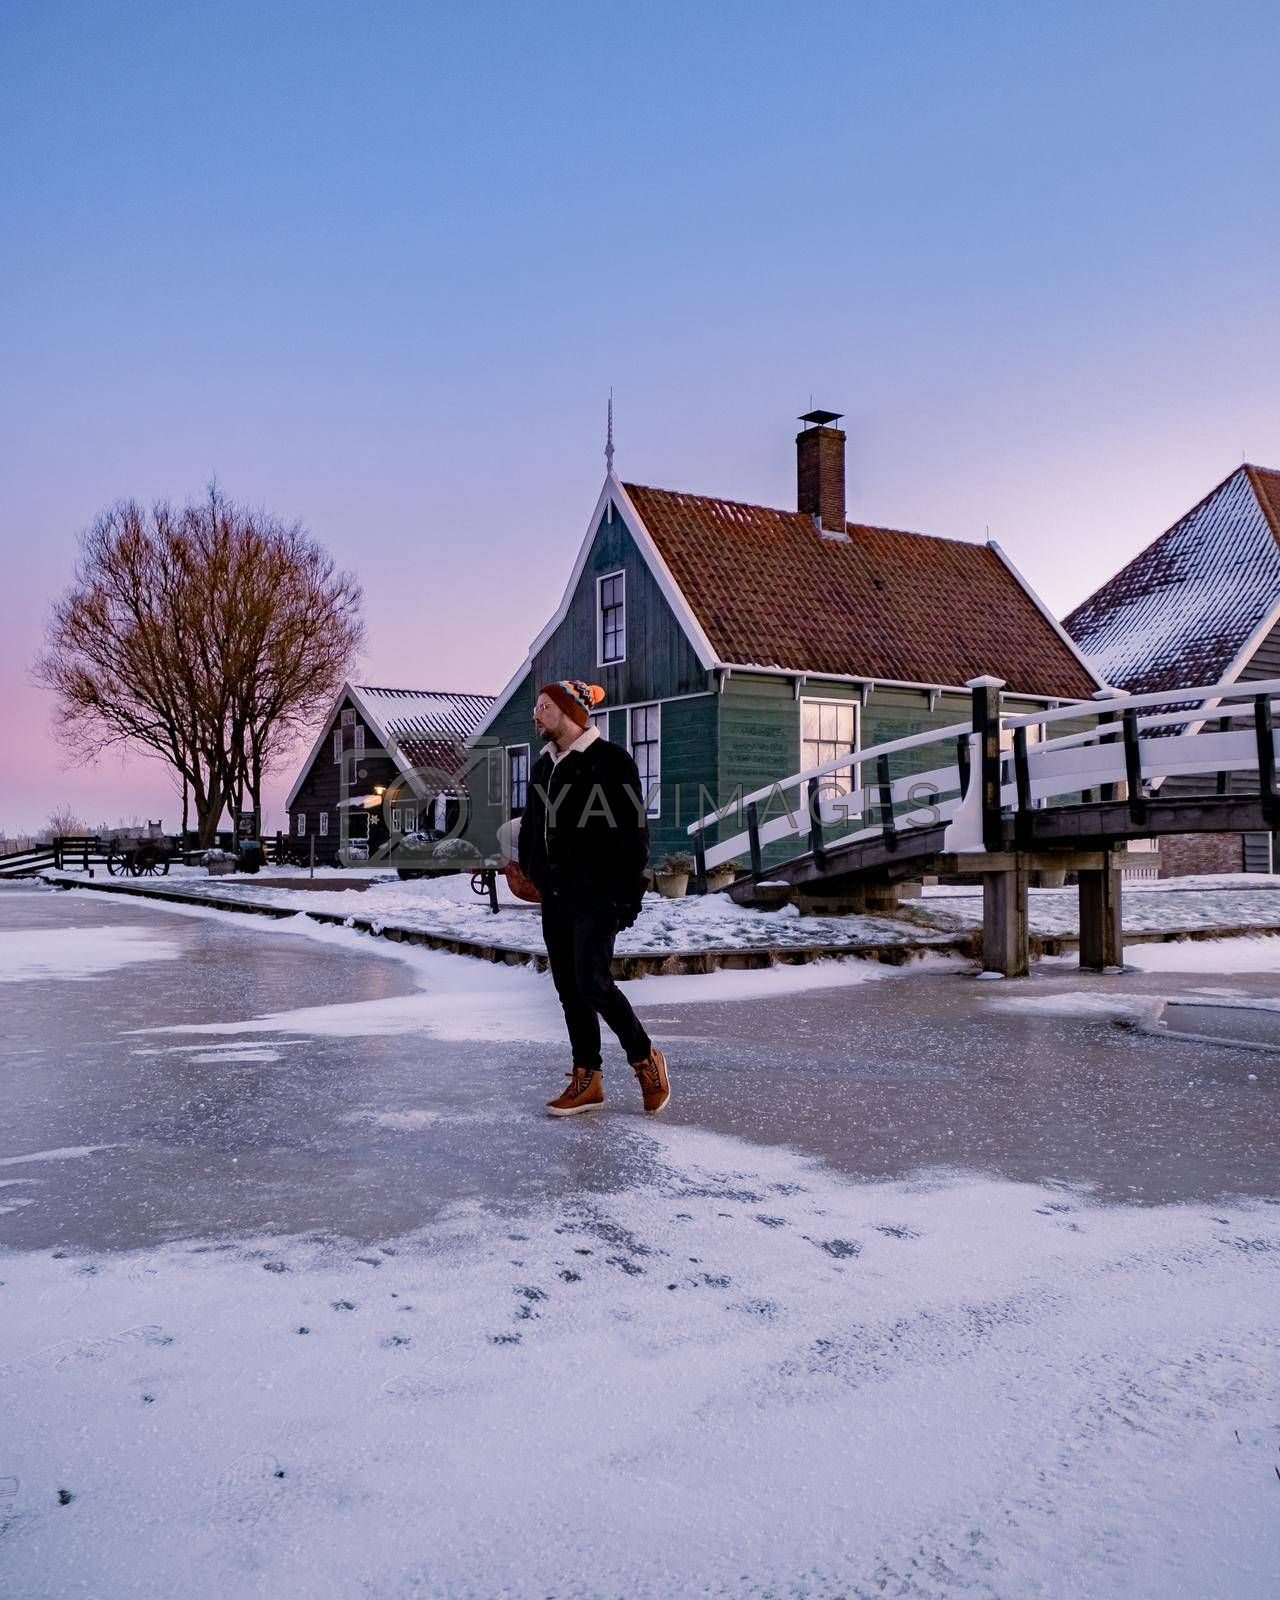 young man walked in the snow, snow covered windmill village in the Zaanse Schans Netherlands, historical wooden windmills in winter Zaanse Schans Holland during winter